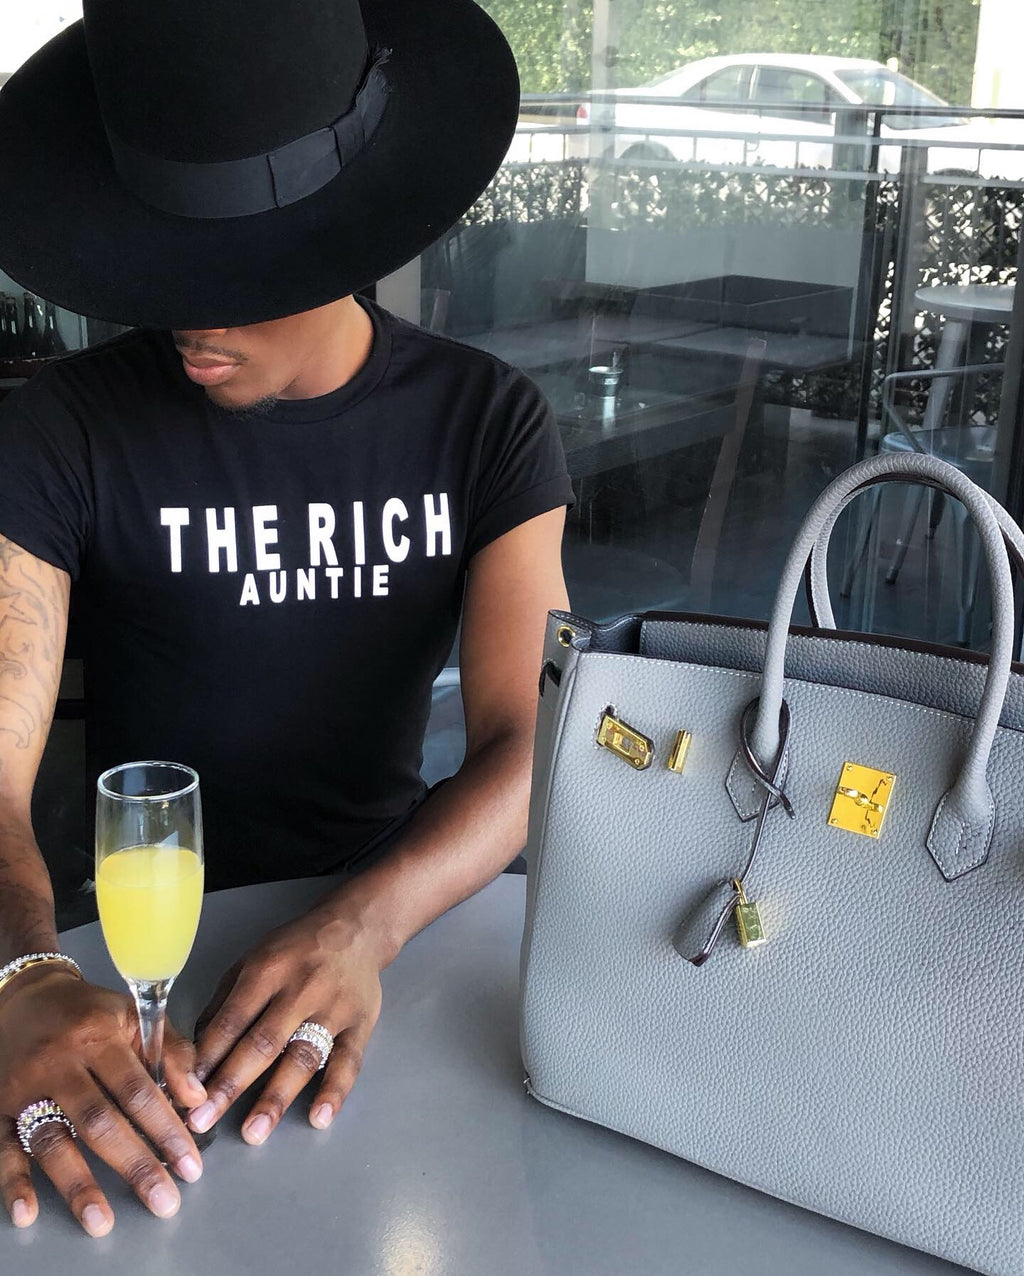 The Rich Auntie Tee (Black)